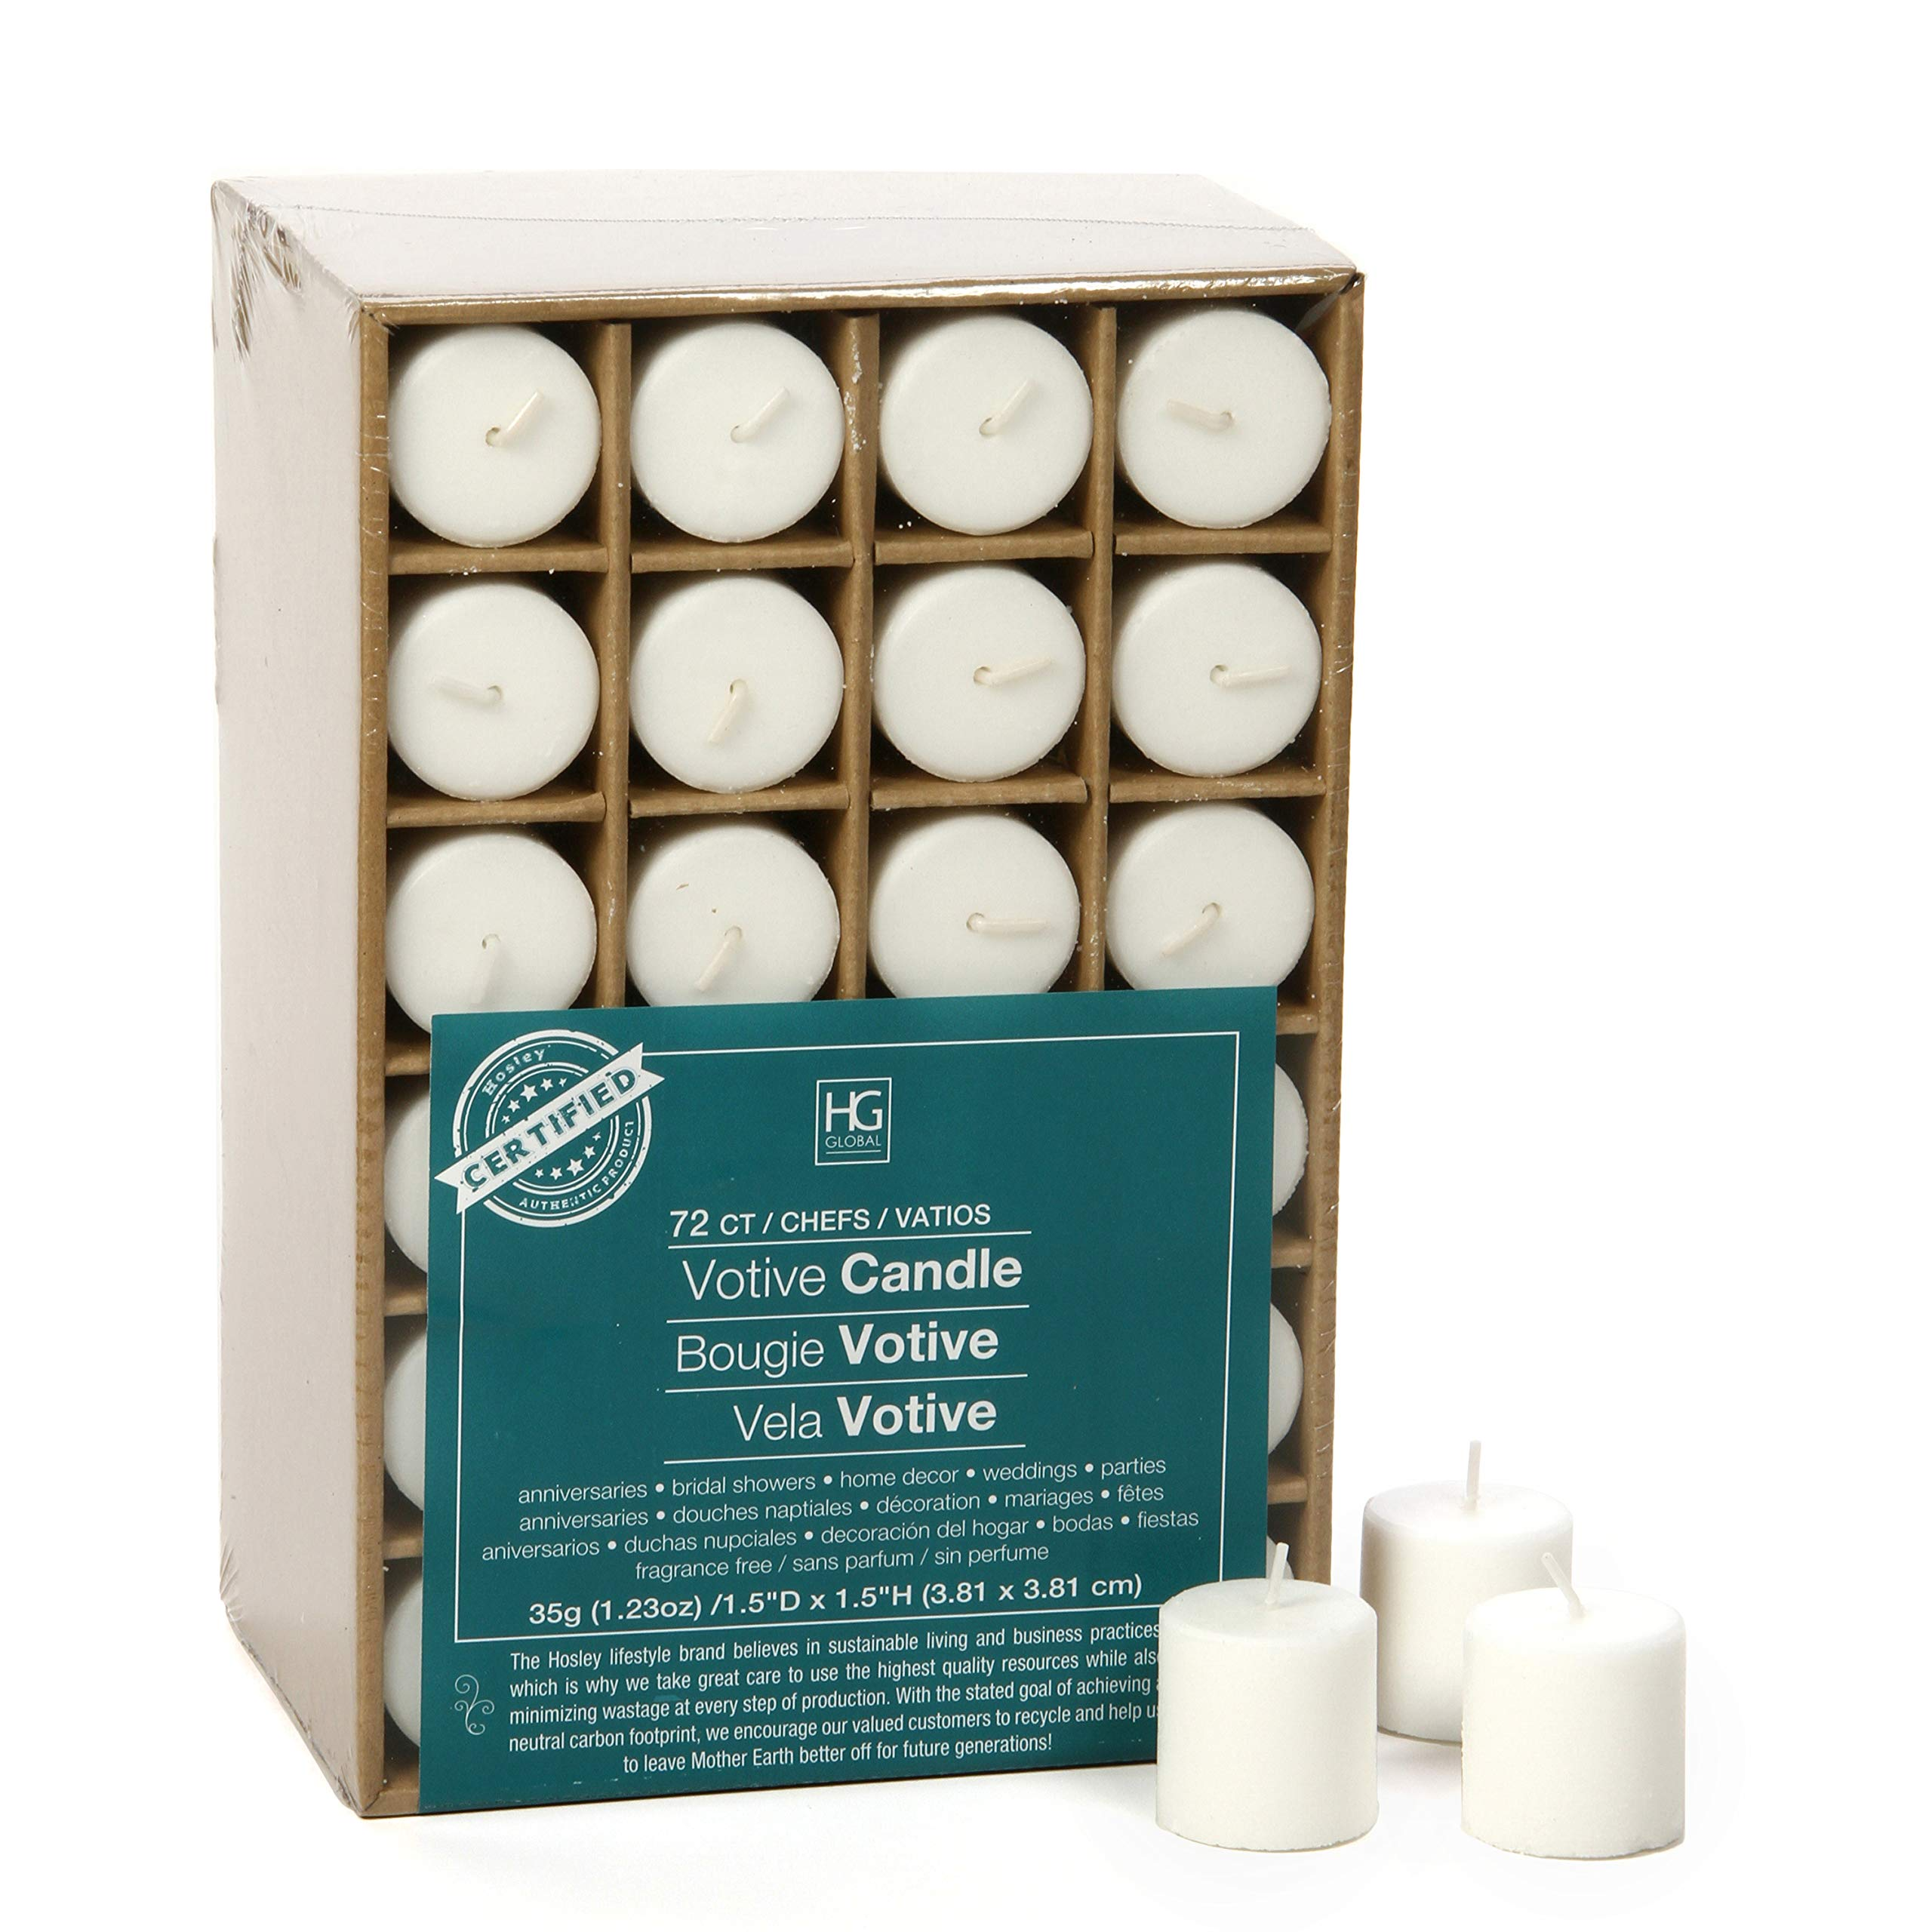 Hosley Set of 72 Unscented White Votive Candles Burns up to 10 Hours Wax Blend Ideal for Weddings Birthday Aromatherapy Party Candle Gardens O2 by Hosley